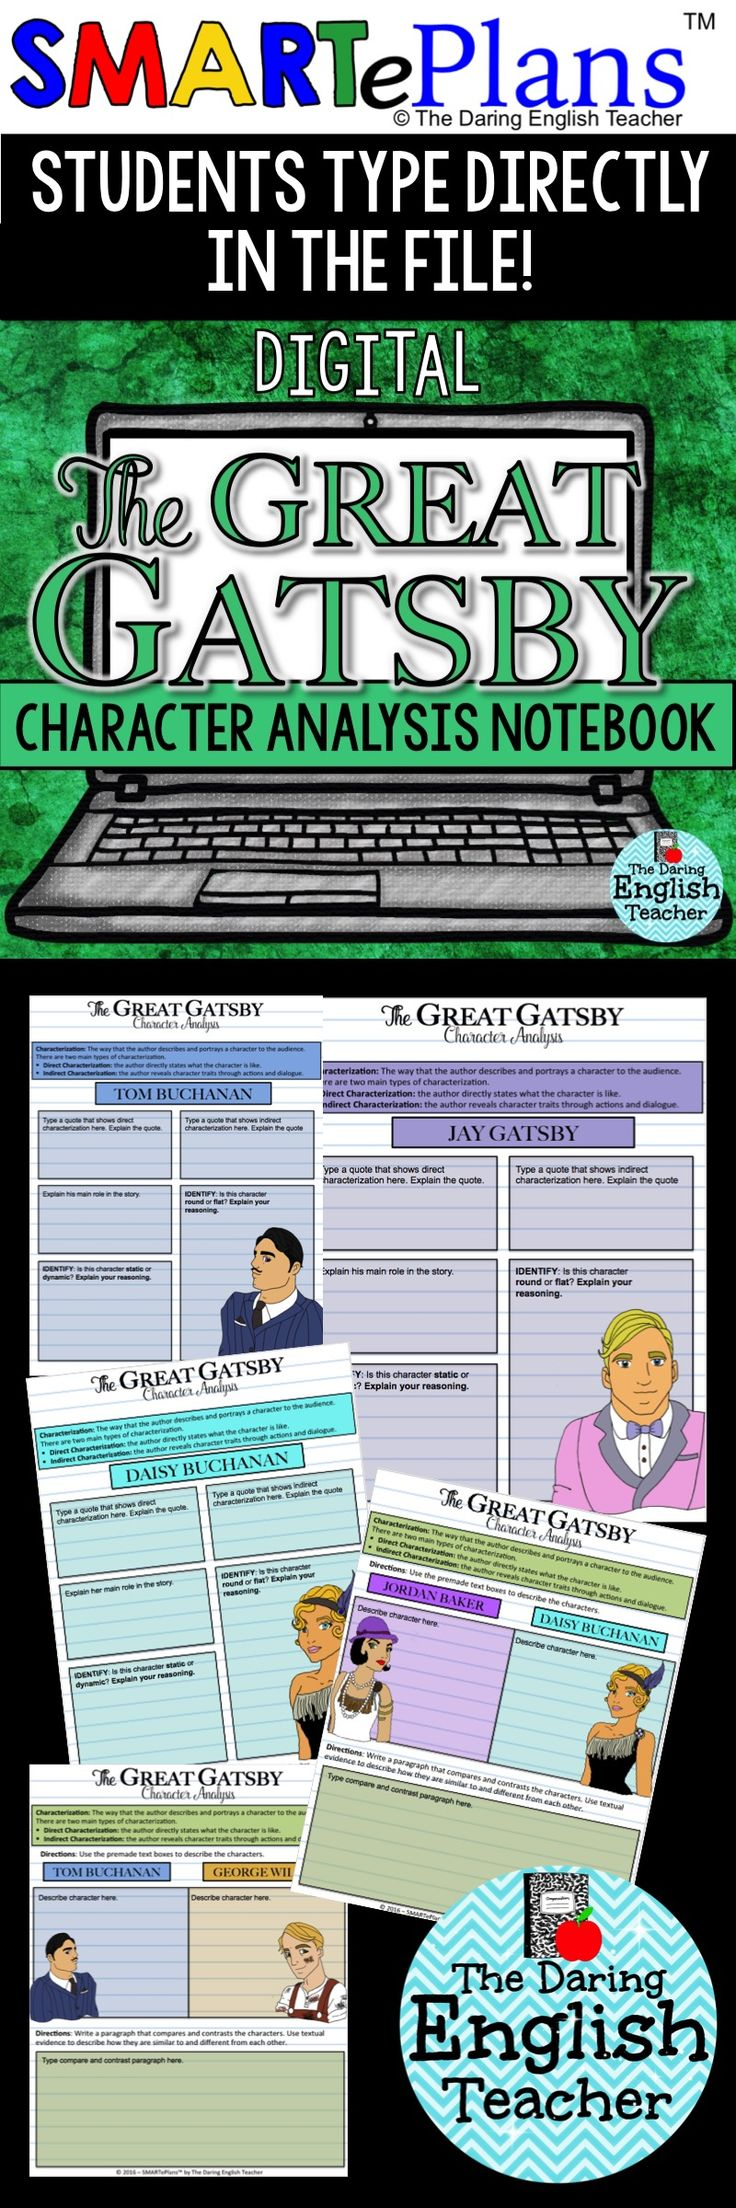 Digital The Great Gatsby character analysis notebook for Google Drive. Analyze each main character in The Great Gatsby. This activity is perfect for the digital or 1:1 high school English classroom.